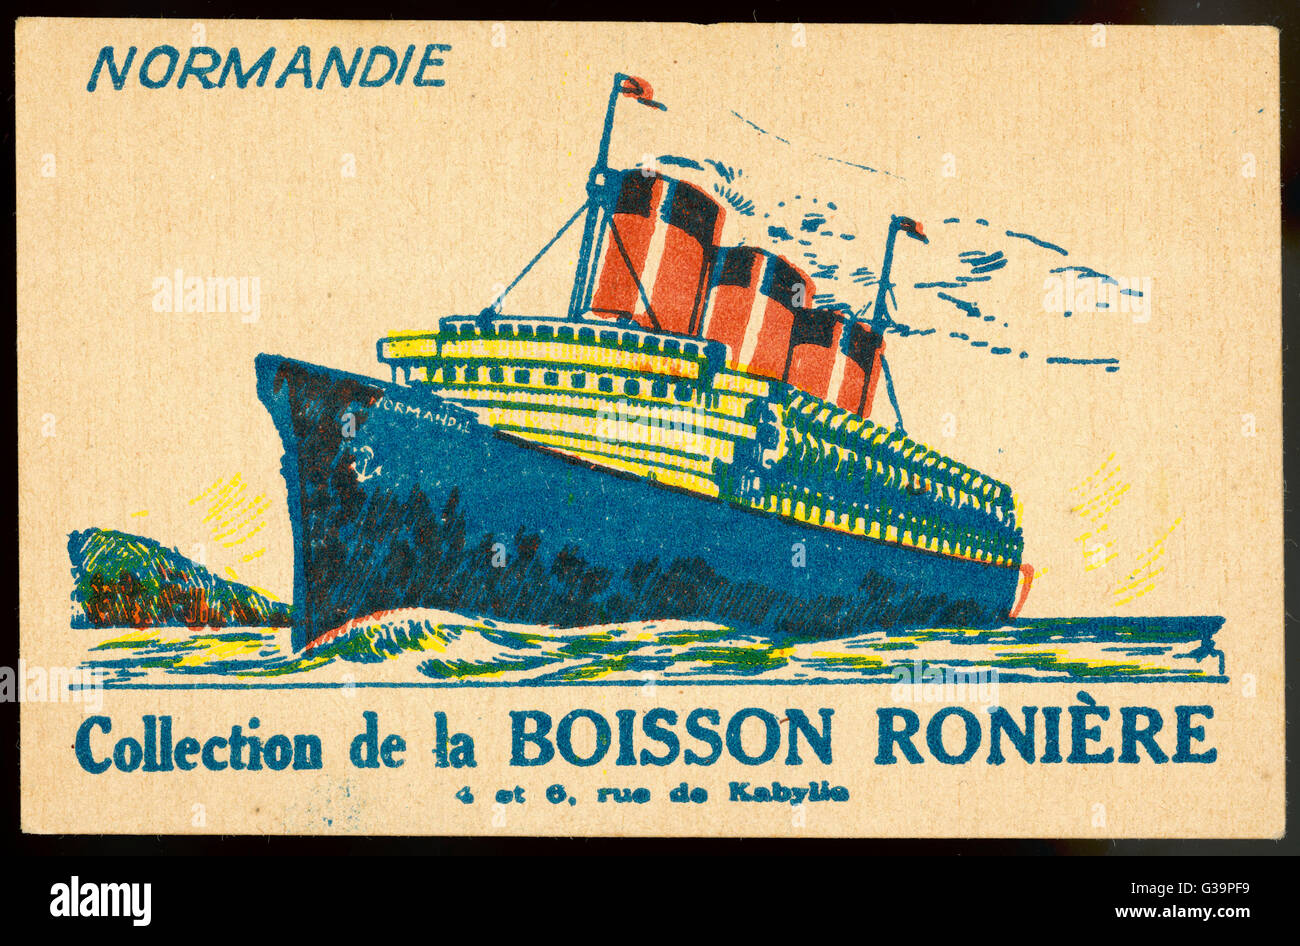 A typical publicity item  associating the company with  the newest glory of the French  merchant fleet       Date: - Stock Image